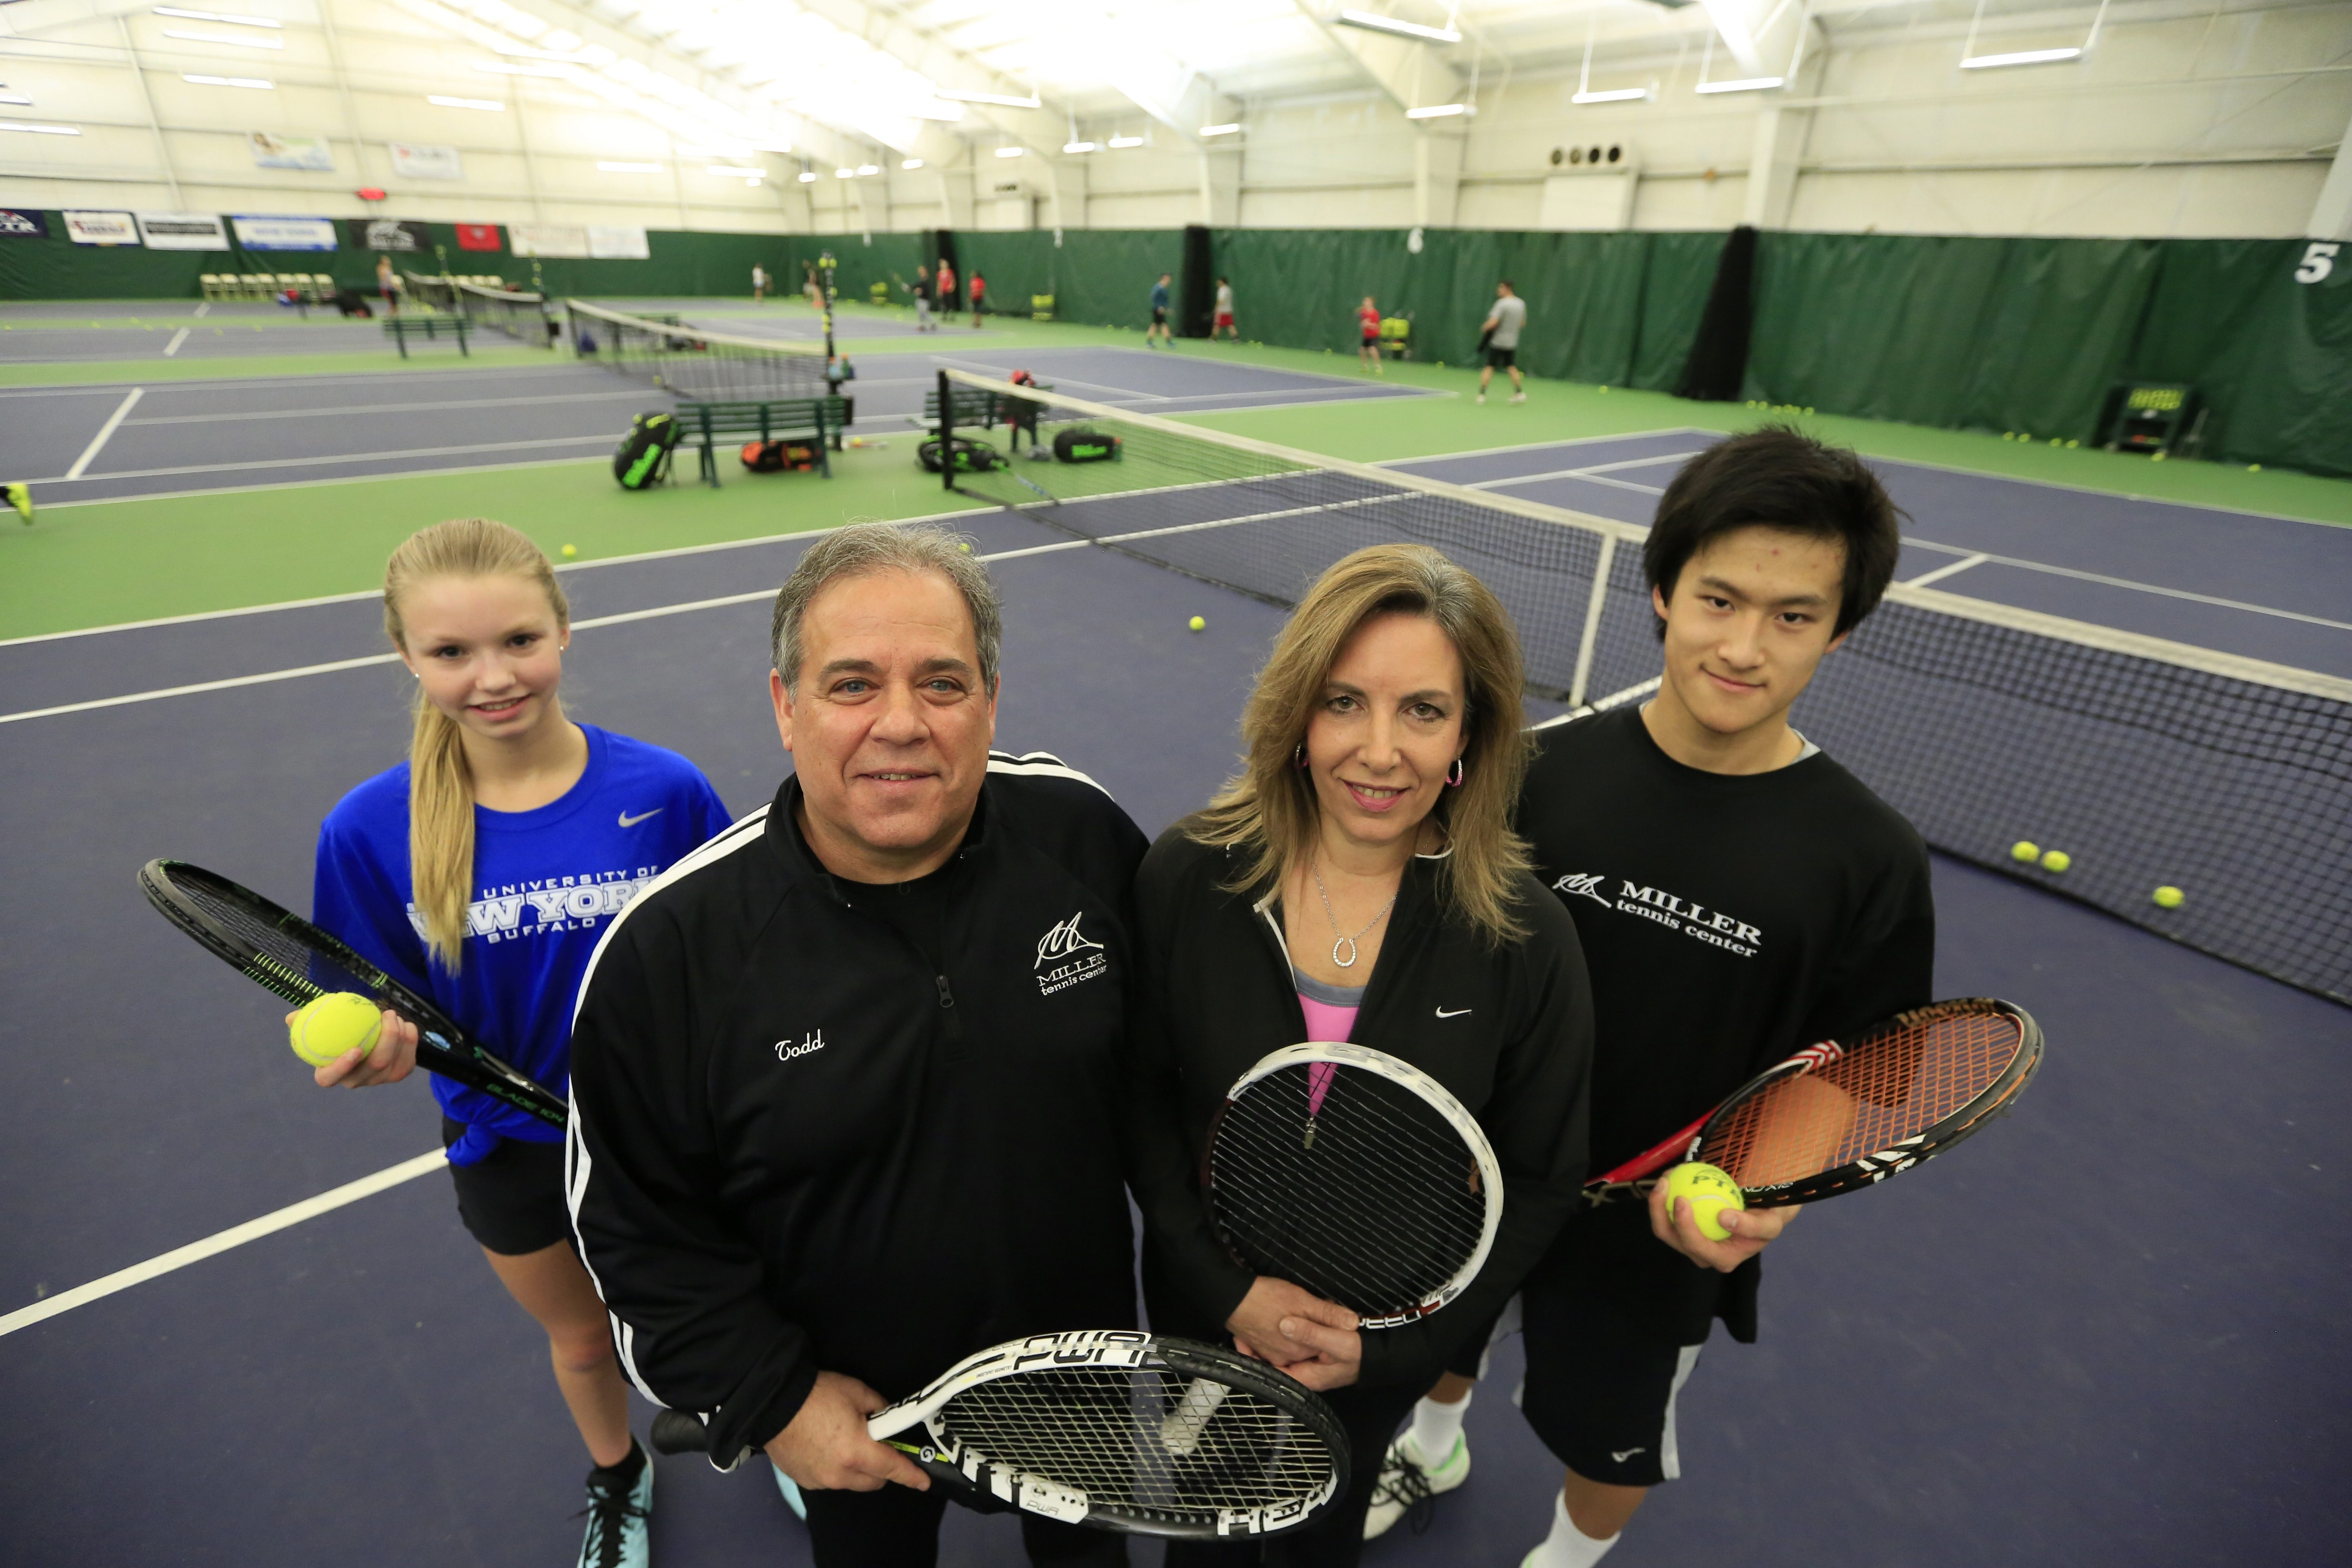 Todd and Debbie Miller, center, of the Miller Tennis Center, stand with two of their students, Jesse Hollins, left, and Harry Wang, at the Buffalo Tennis Academy.